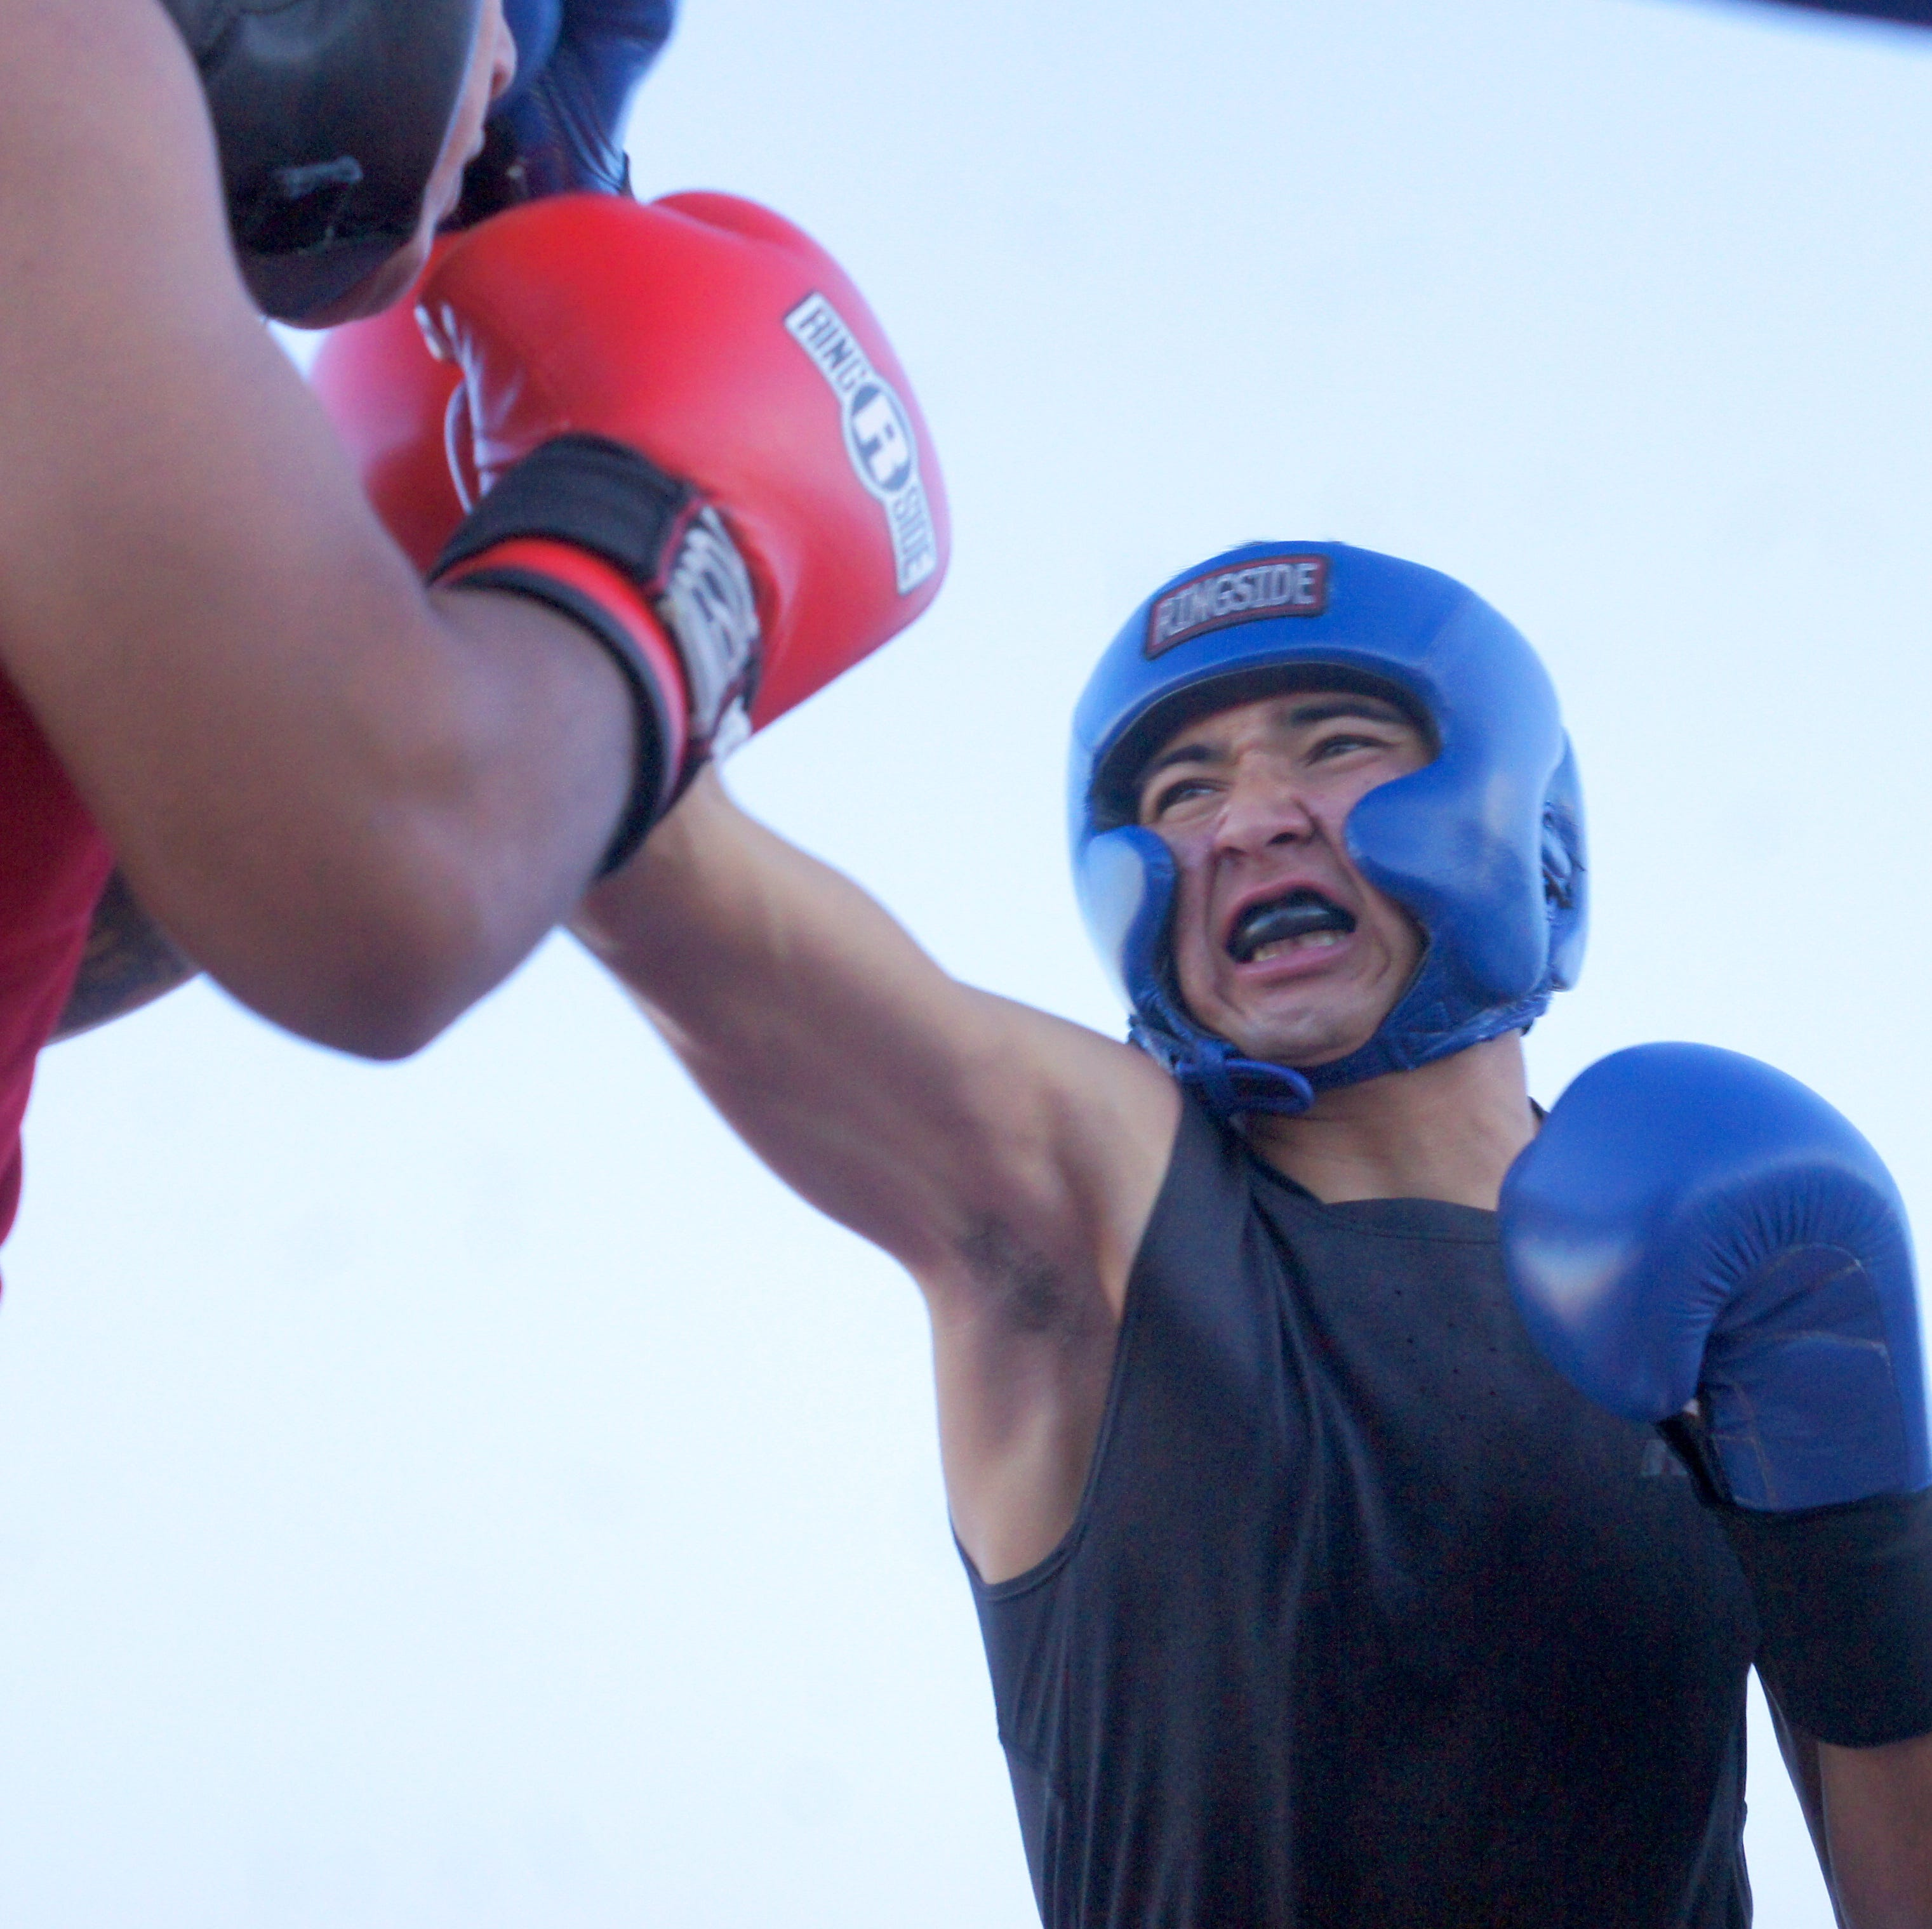 Lopez wins bout during Fairground Throw-Down at SWNM State Fair in Deming, NM